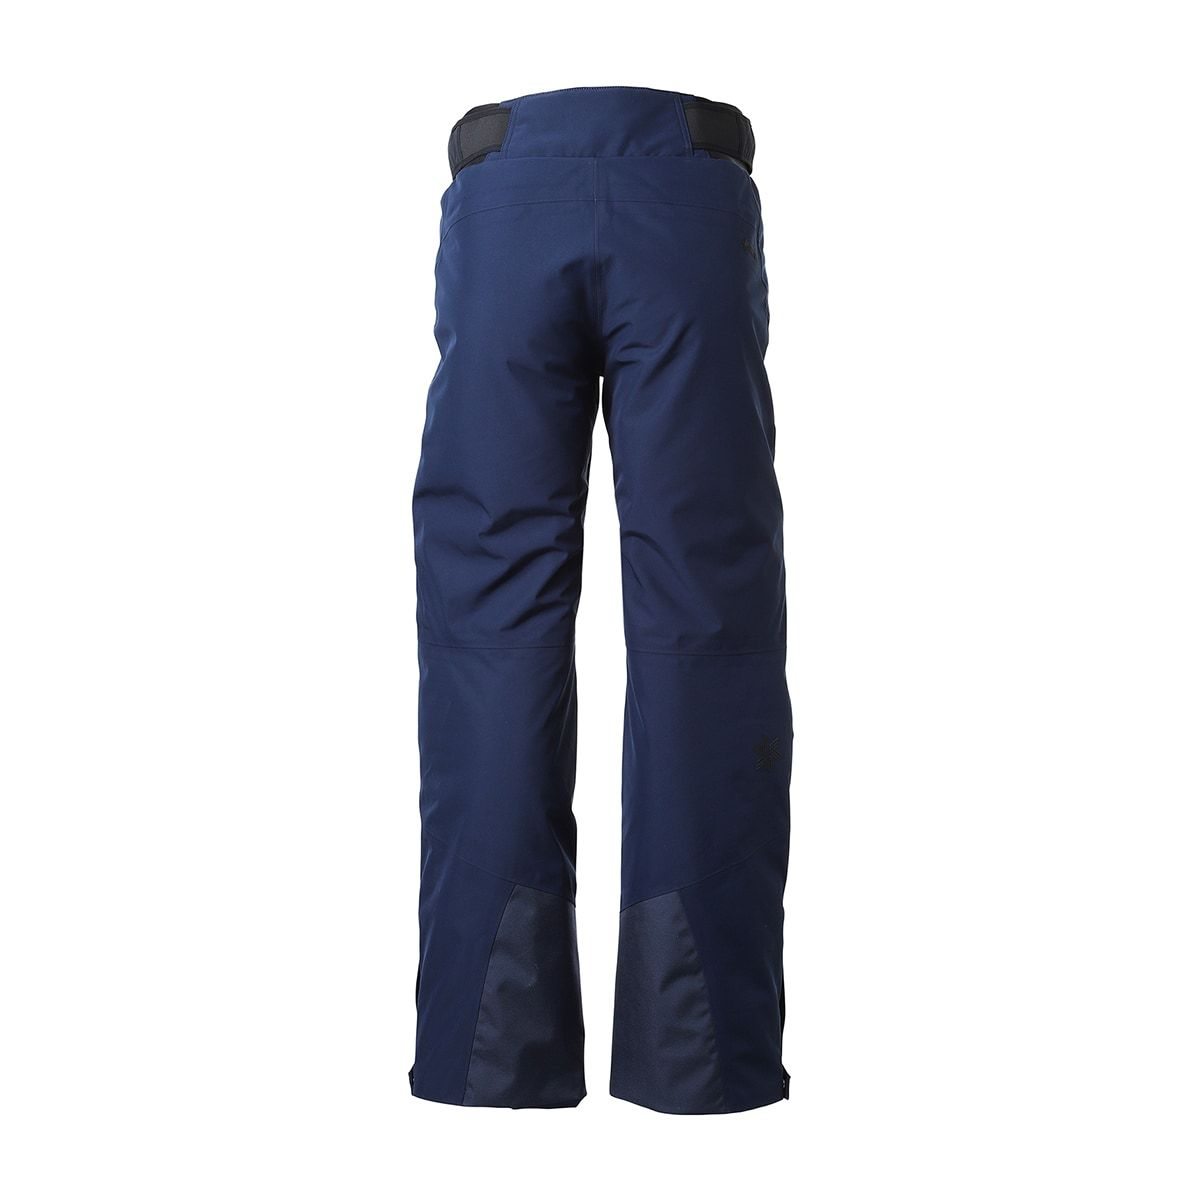 THEBE GTX PANTS